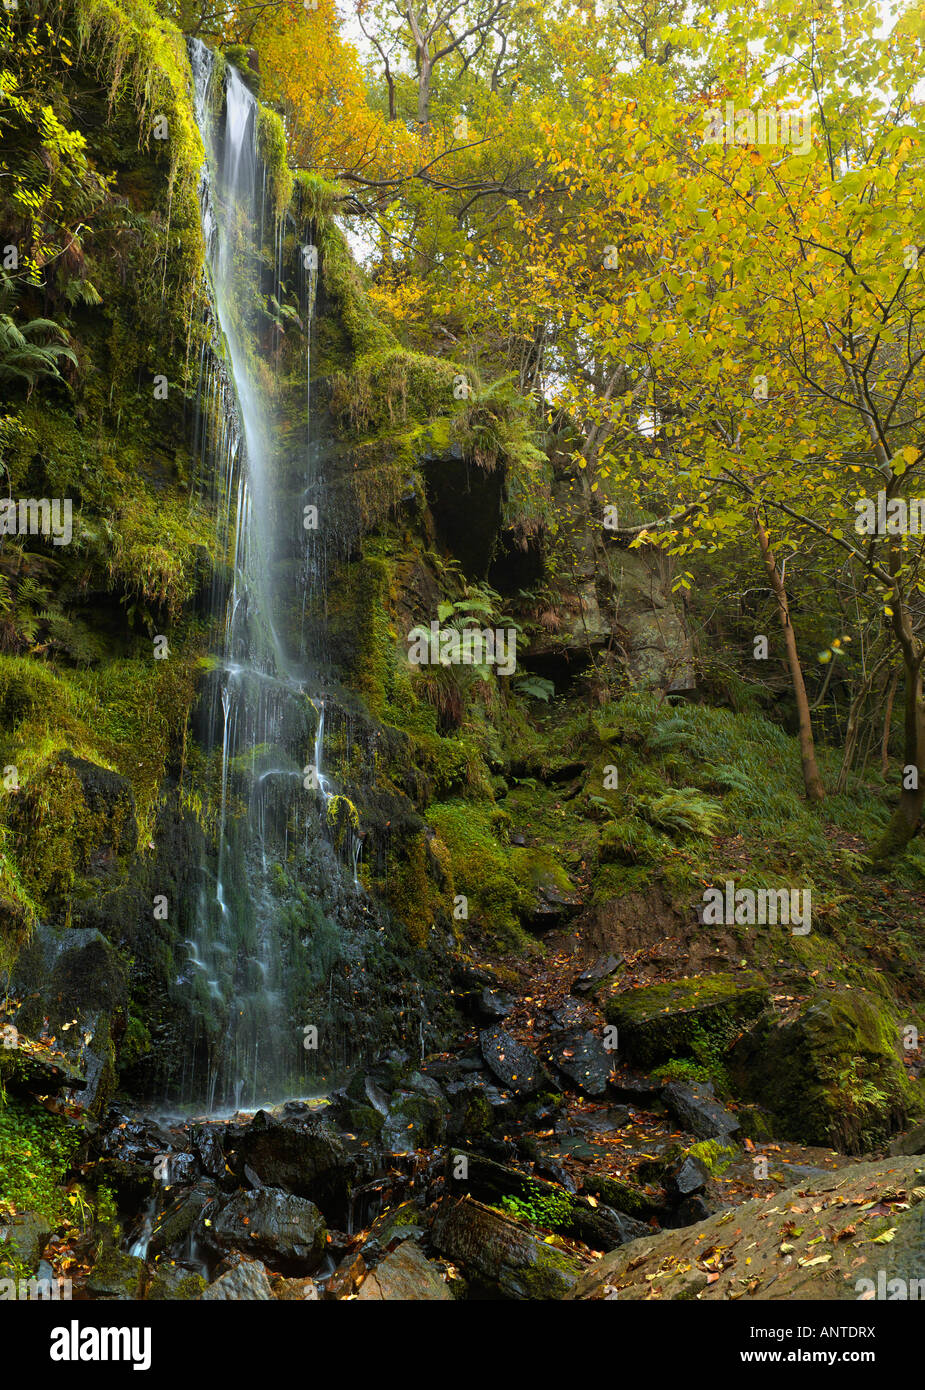 The famous Mallyan Spout Waterfall in Goathland North Yorkshire England - Stock Image